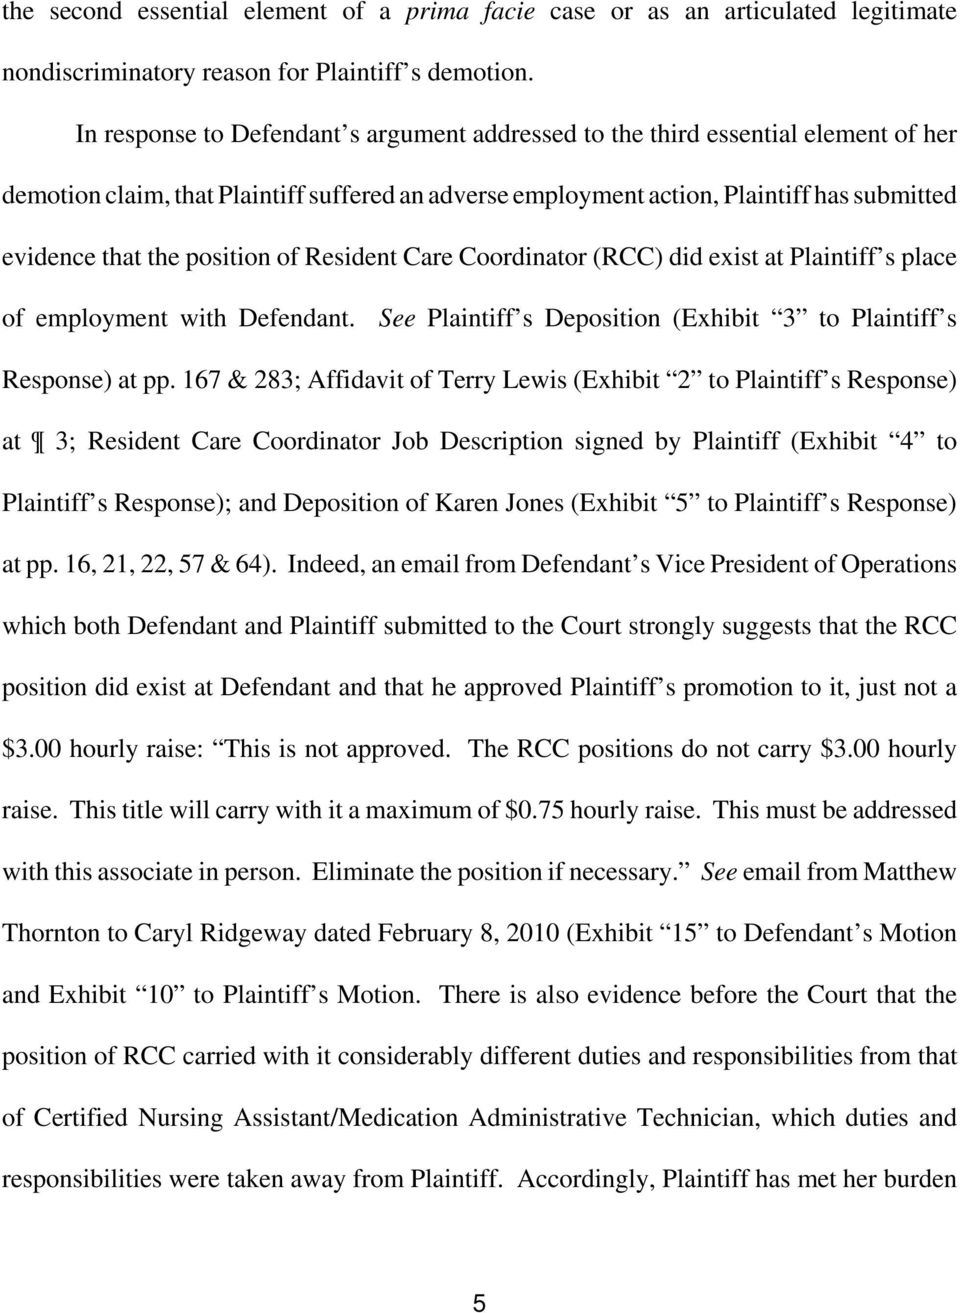 position of Resident Care Coordinator (RCC) did exist at Plaintiff s place of employment with Defendant. See Plaintiff s Deposition (Exhibit 3 to Plaintiff s Response) at pp.